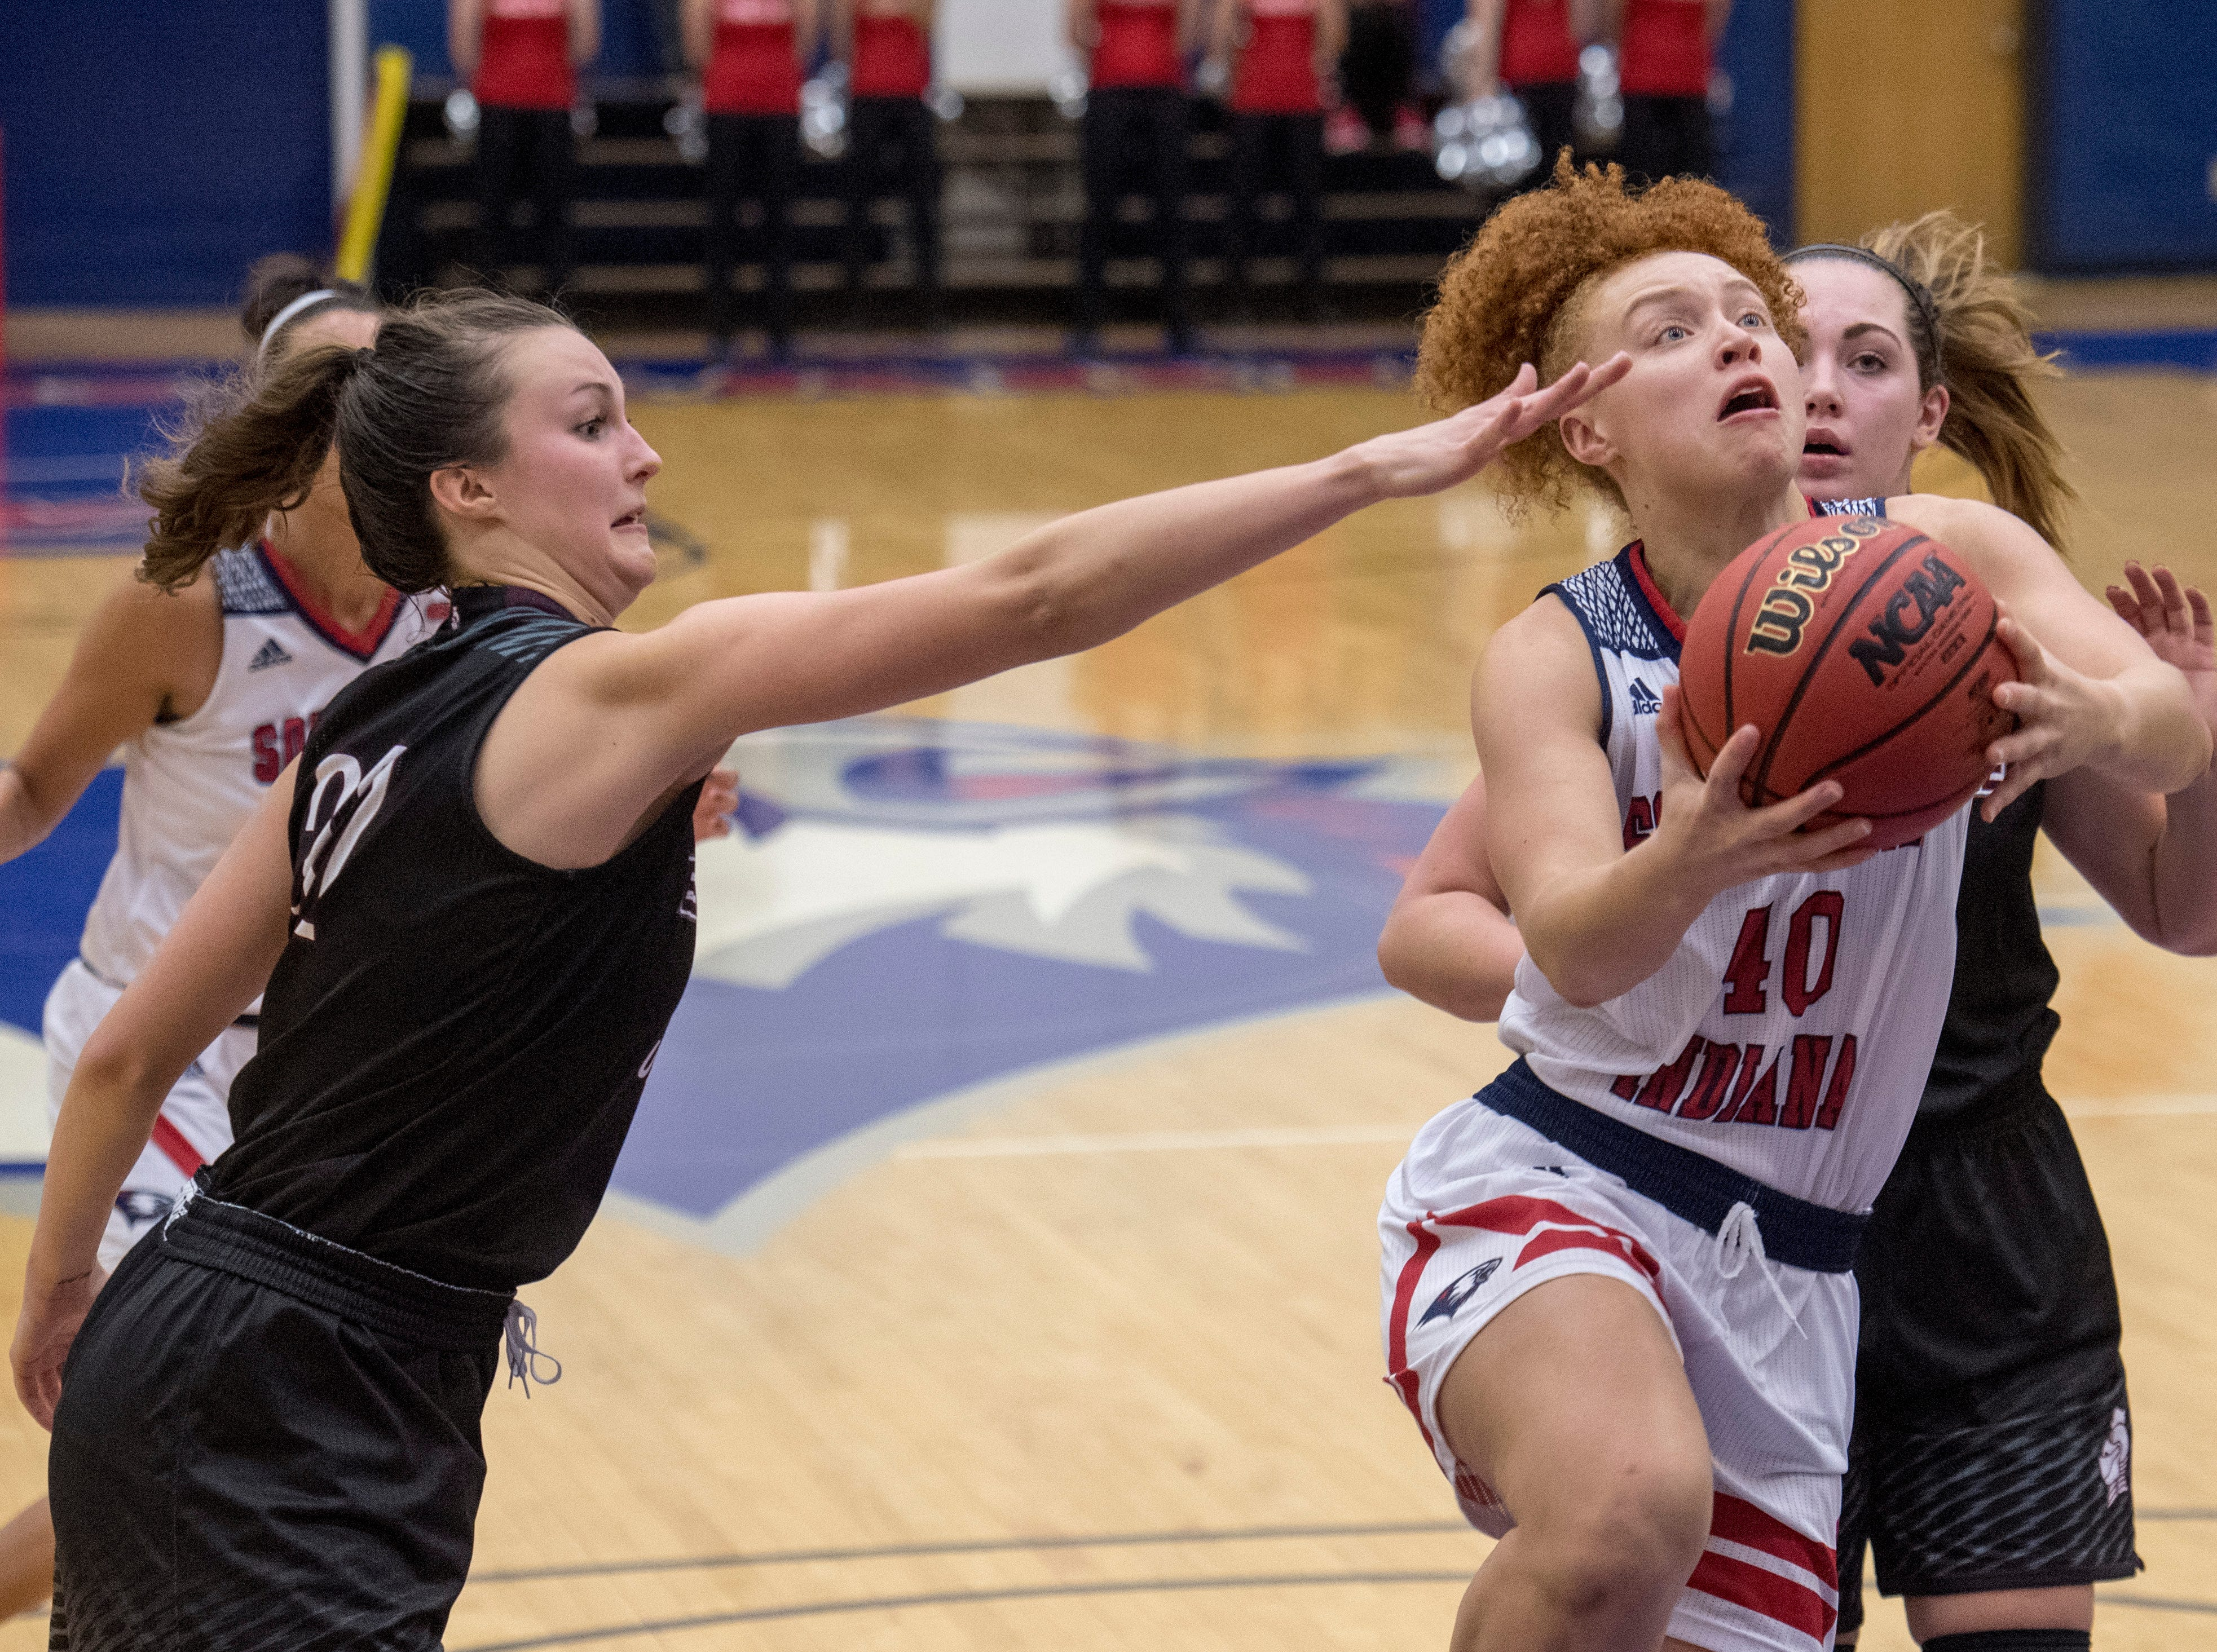 USI's Mikayla Rowan (40) goes for 2-points during the USI vs Bellarmine game at the PAC Saturday, Dec. 1, 2018.